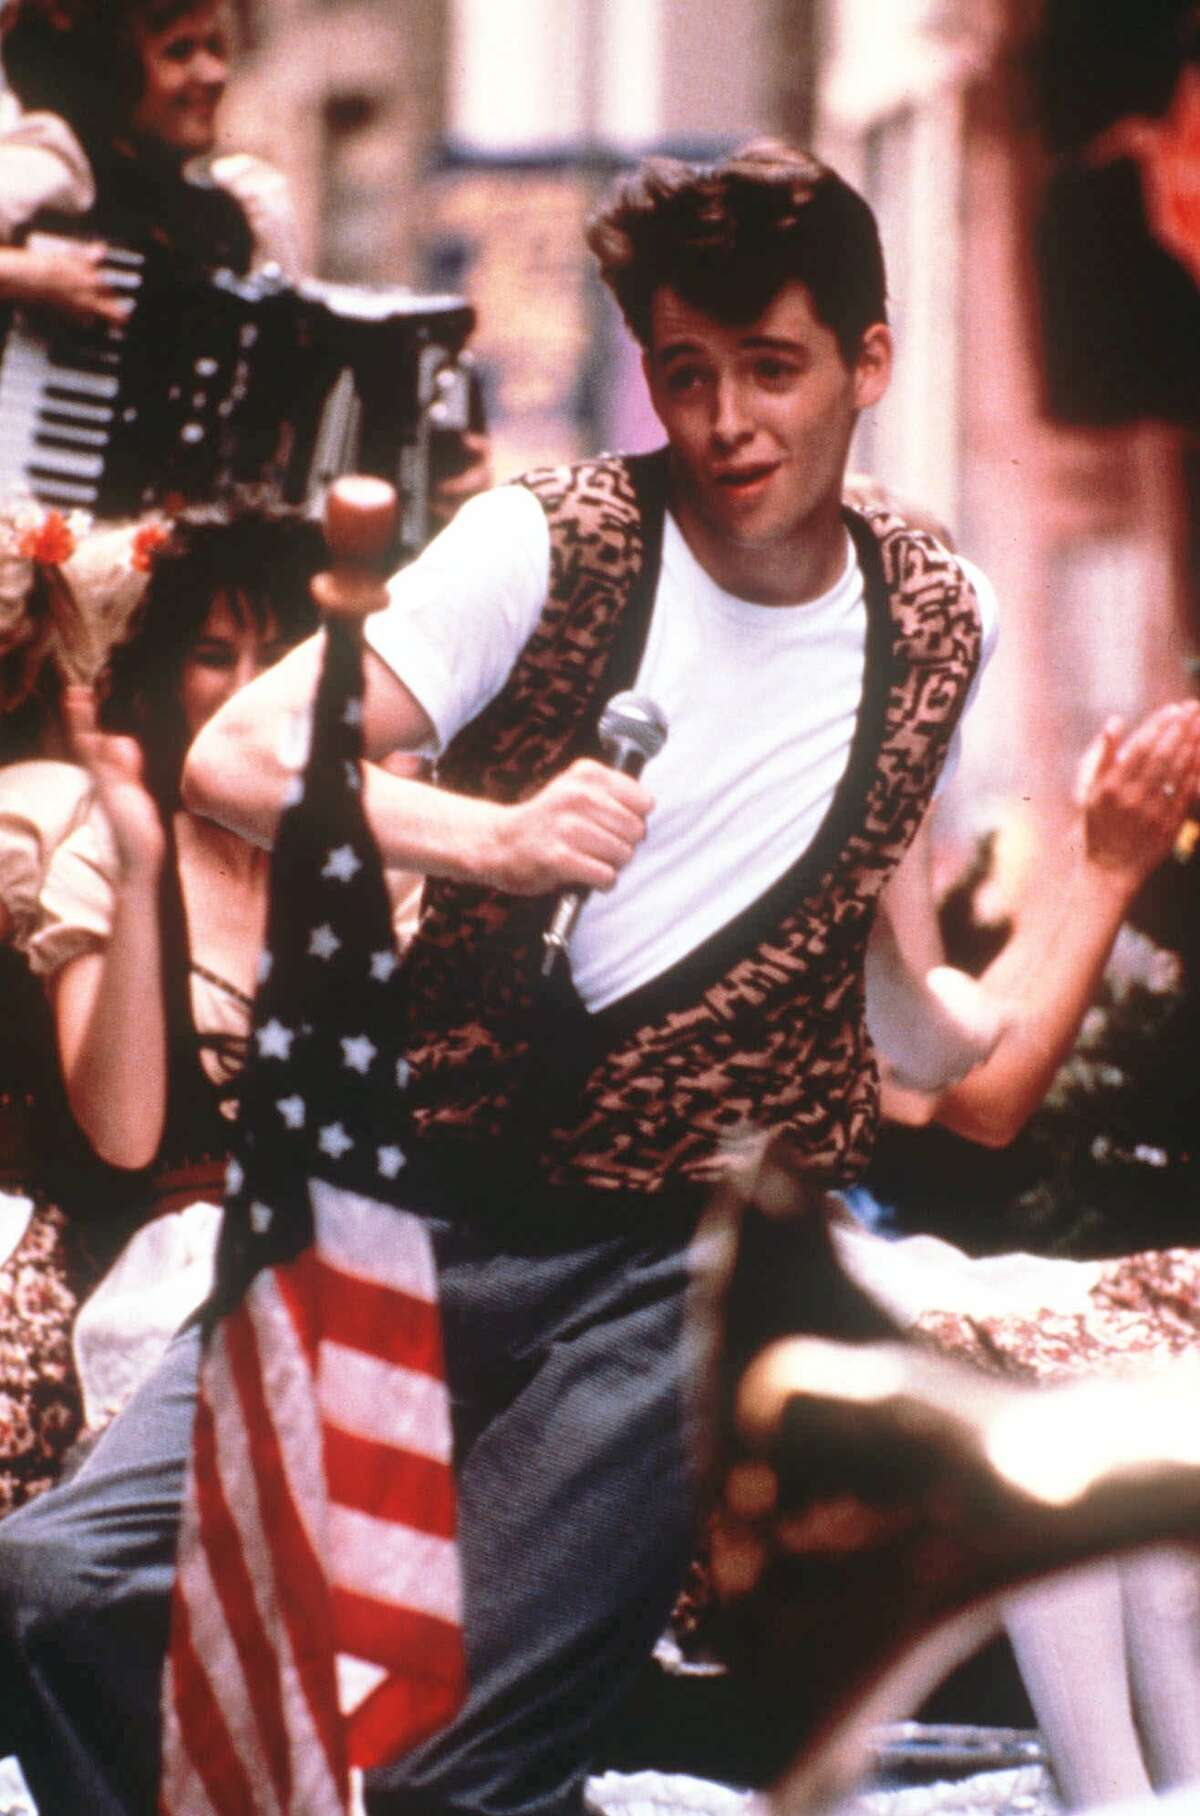 Matthew Broderick appears from a scene from the film